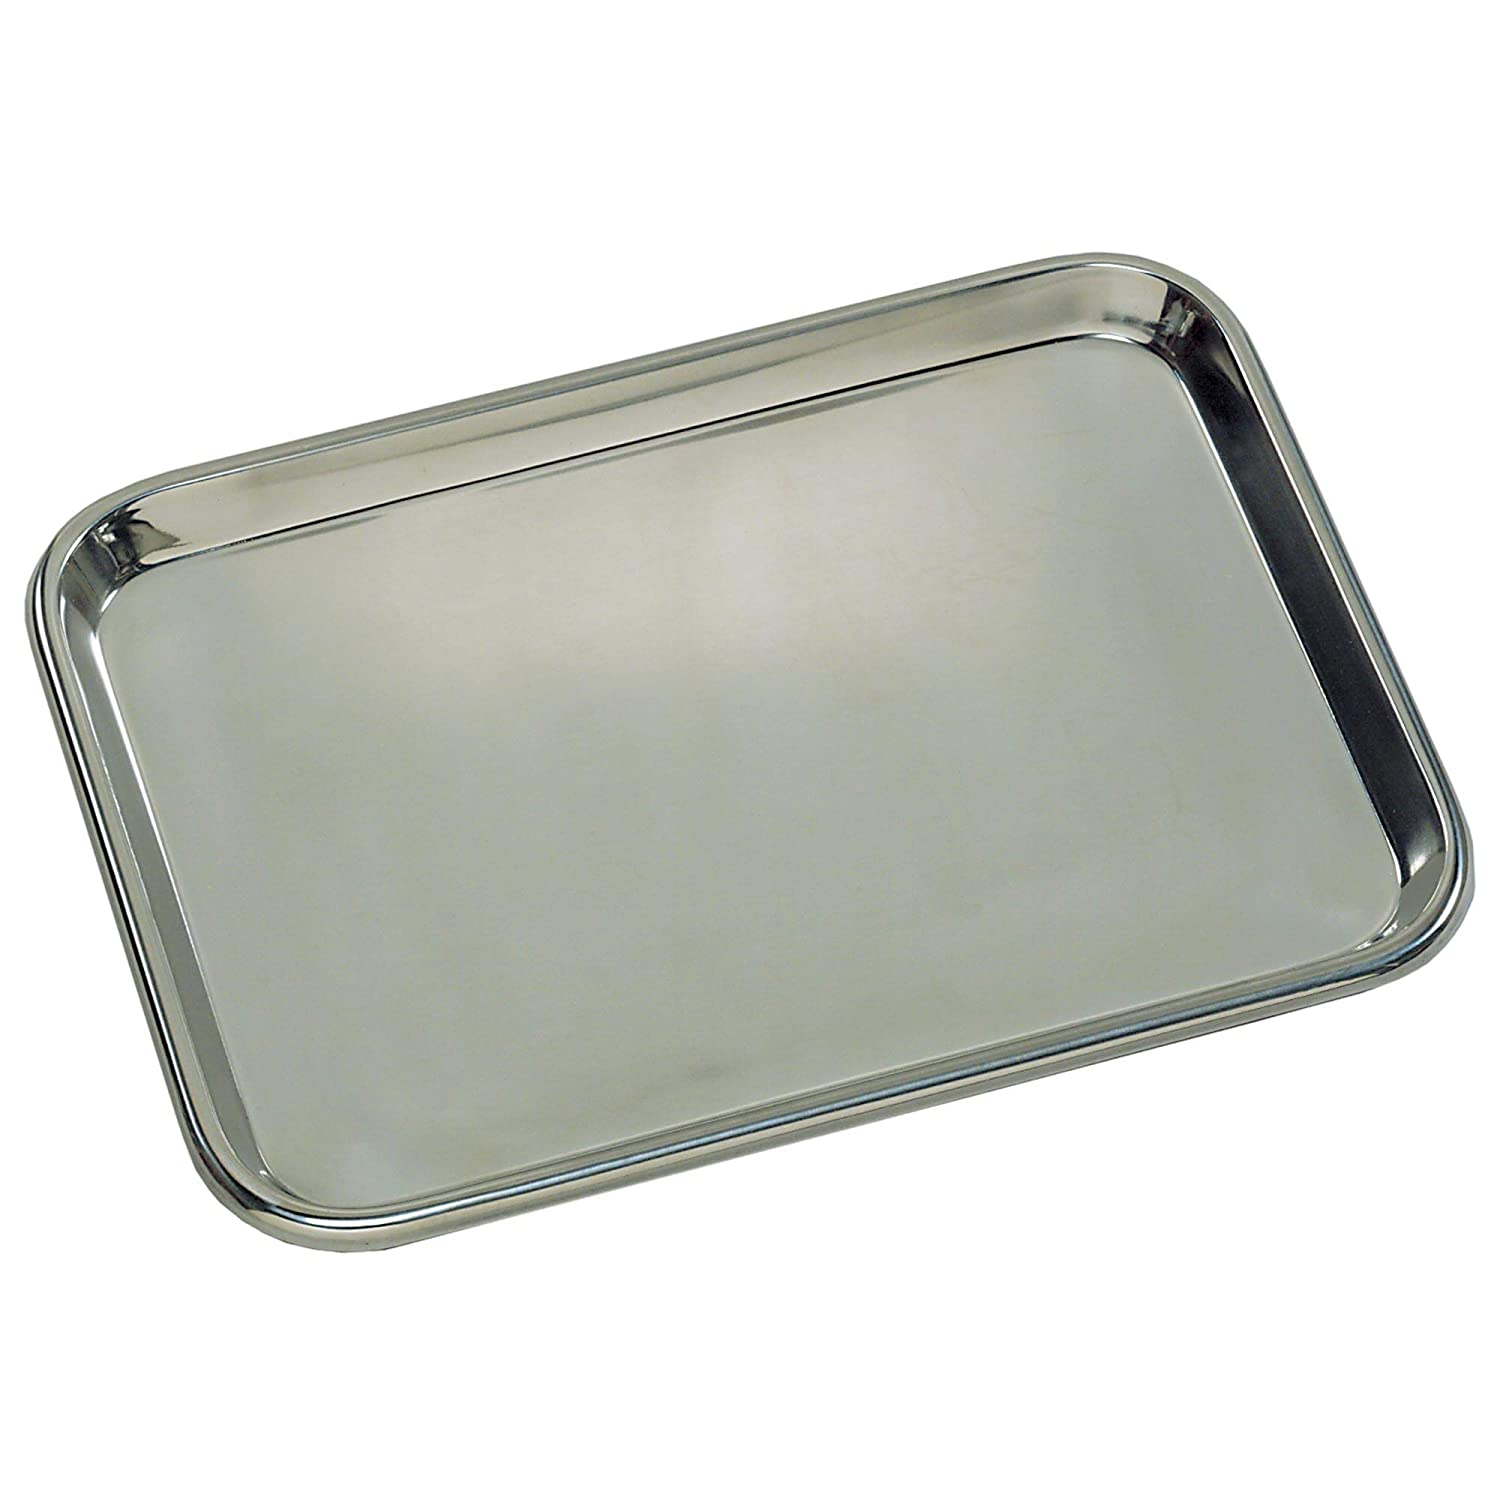 Graham-Field Grafco 3264 Flat Type Instrument Tray, Stainless Steel, 19